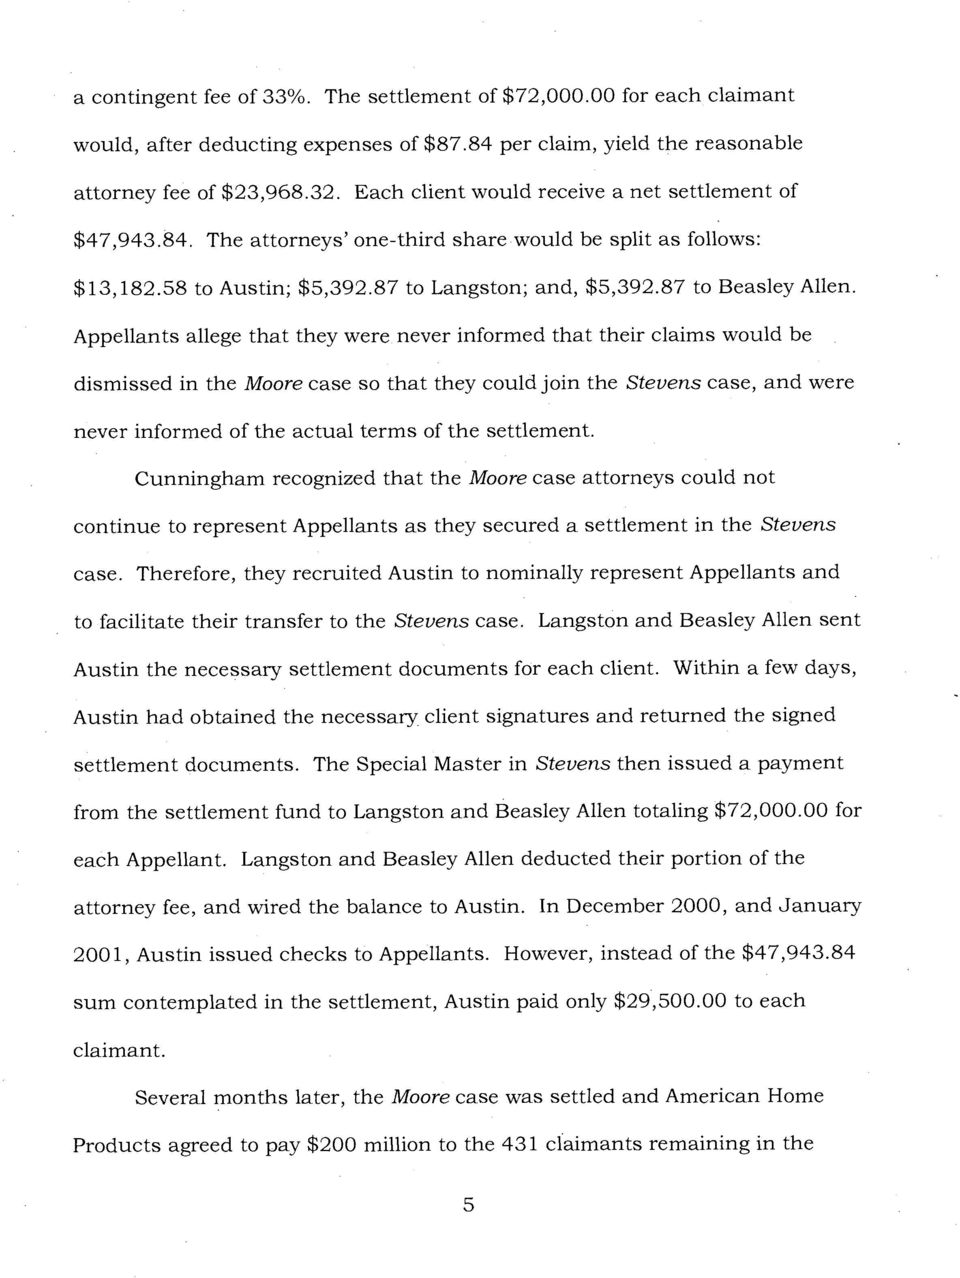 Appellants allege that they were never informed that their claims would be dismissed in the Moore case so that they could join the Stevens case, and were never informed of the actual terms of the